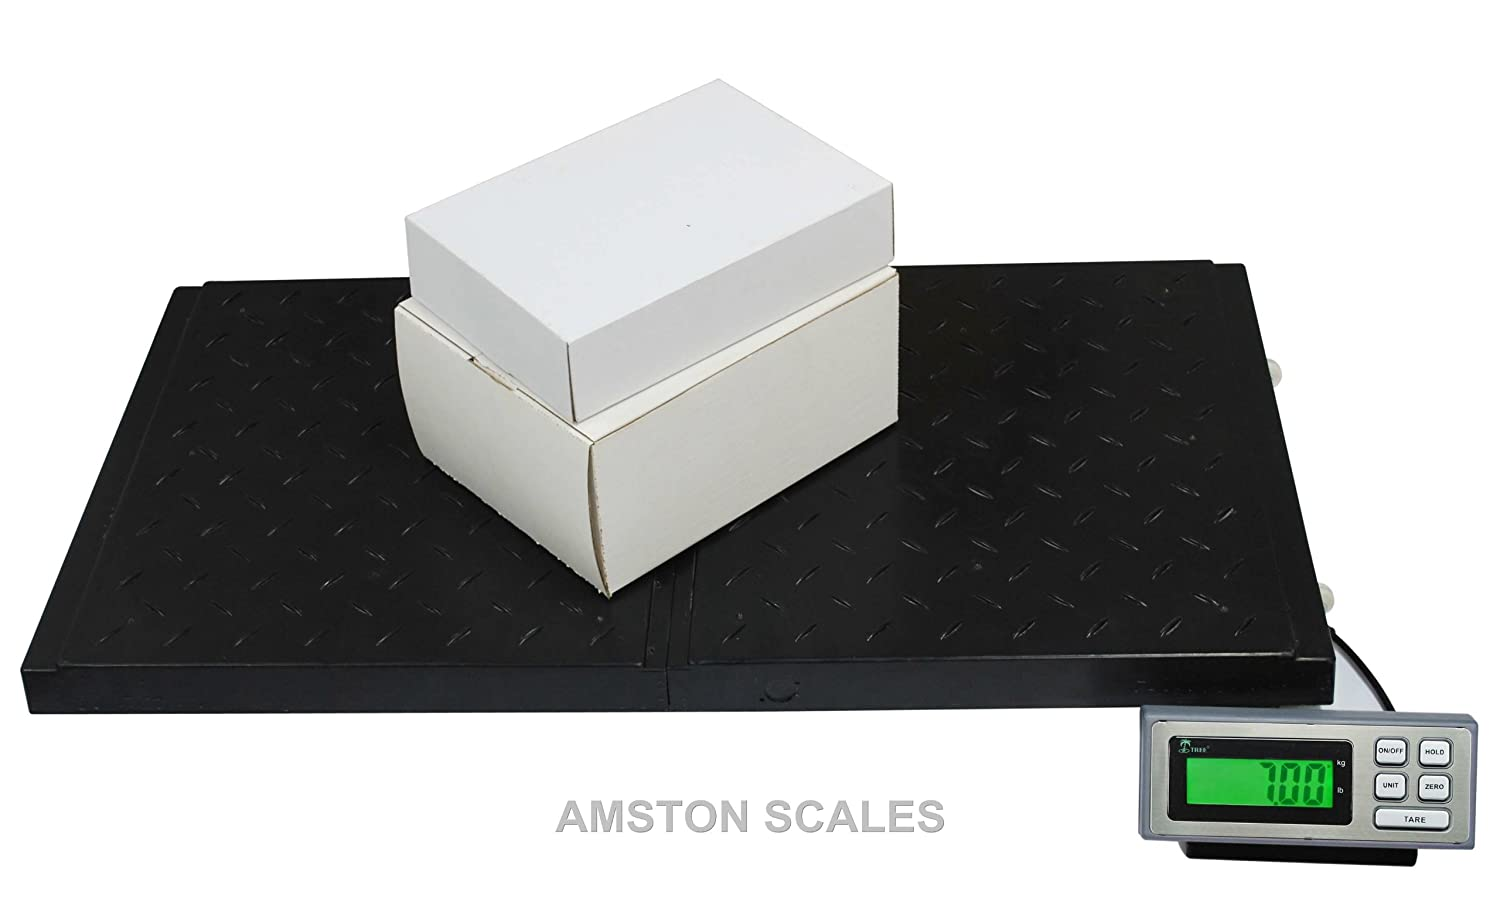 a5a75bbba298 AMSTON SCALES 400 LB x 0.1 LB 38 x 20 Inch Platform Digital Heavy Duty  Welded Steel Floor Bench Shipping Scale